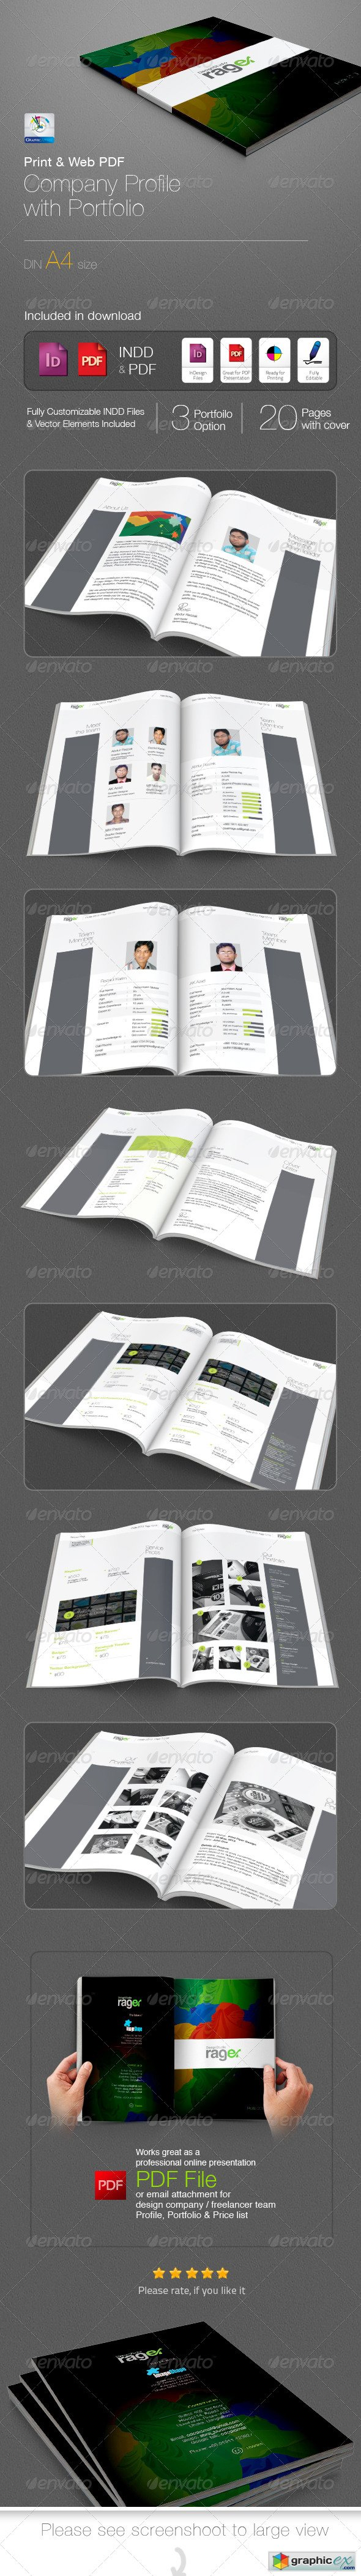 Company Profile with Portfolio Booklet